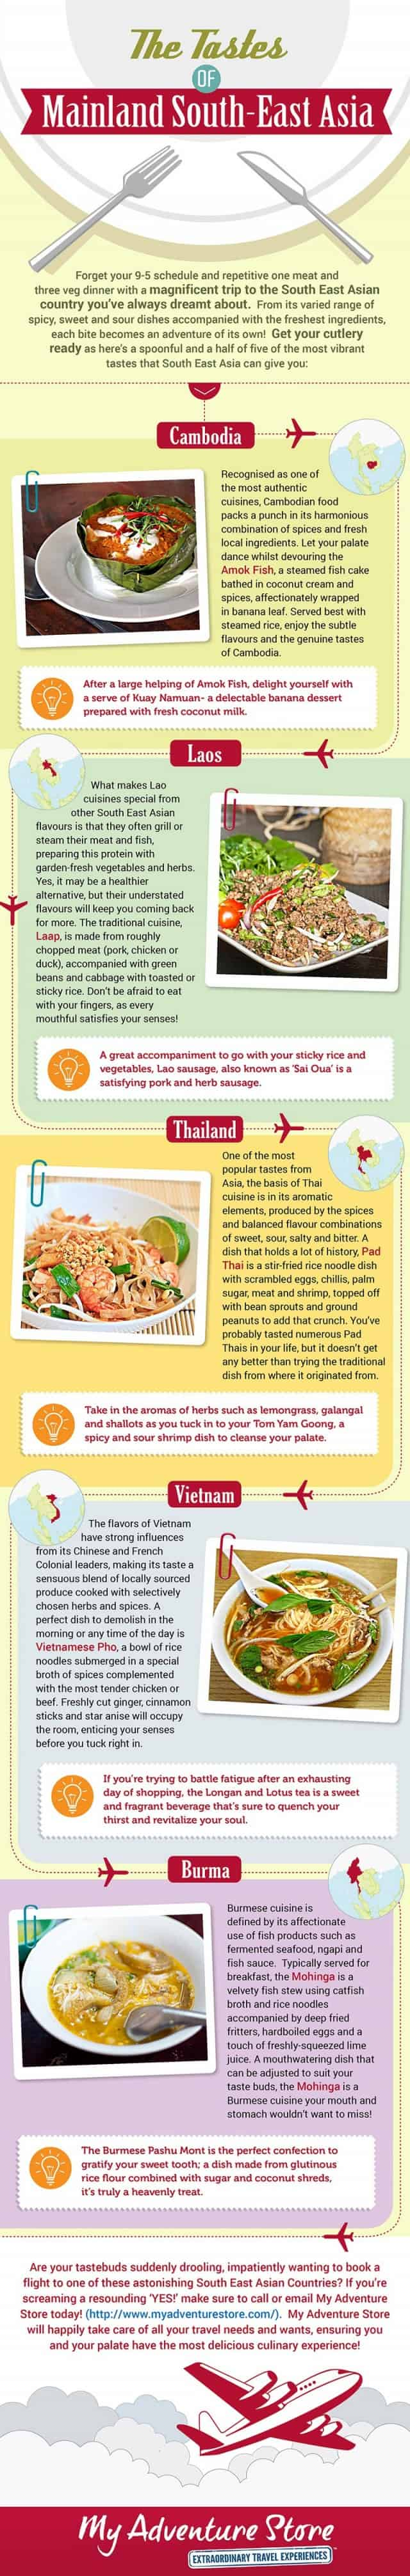 Tastes-of-Mainland-SE-Asia-Infographic-640x4025